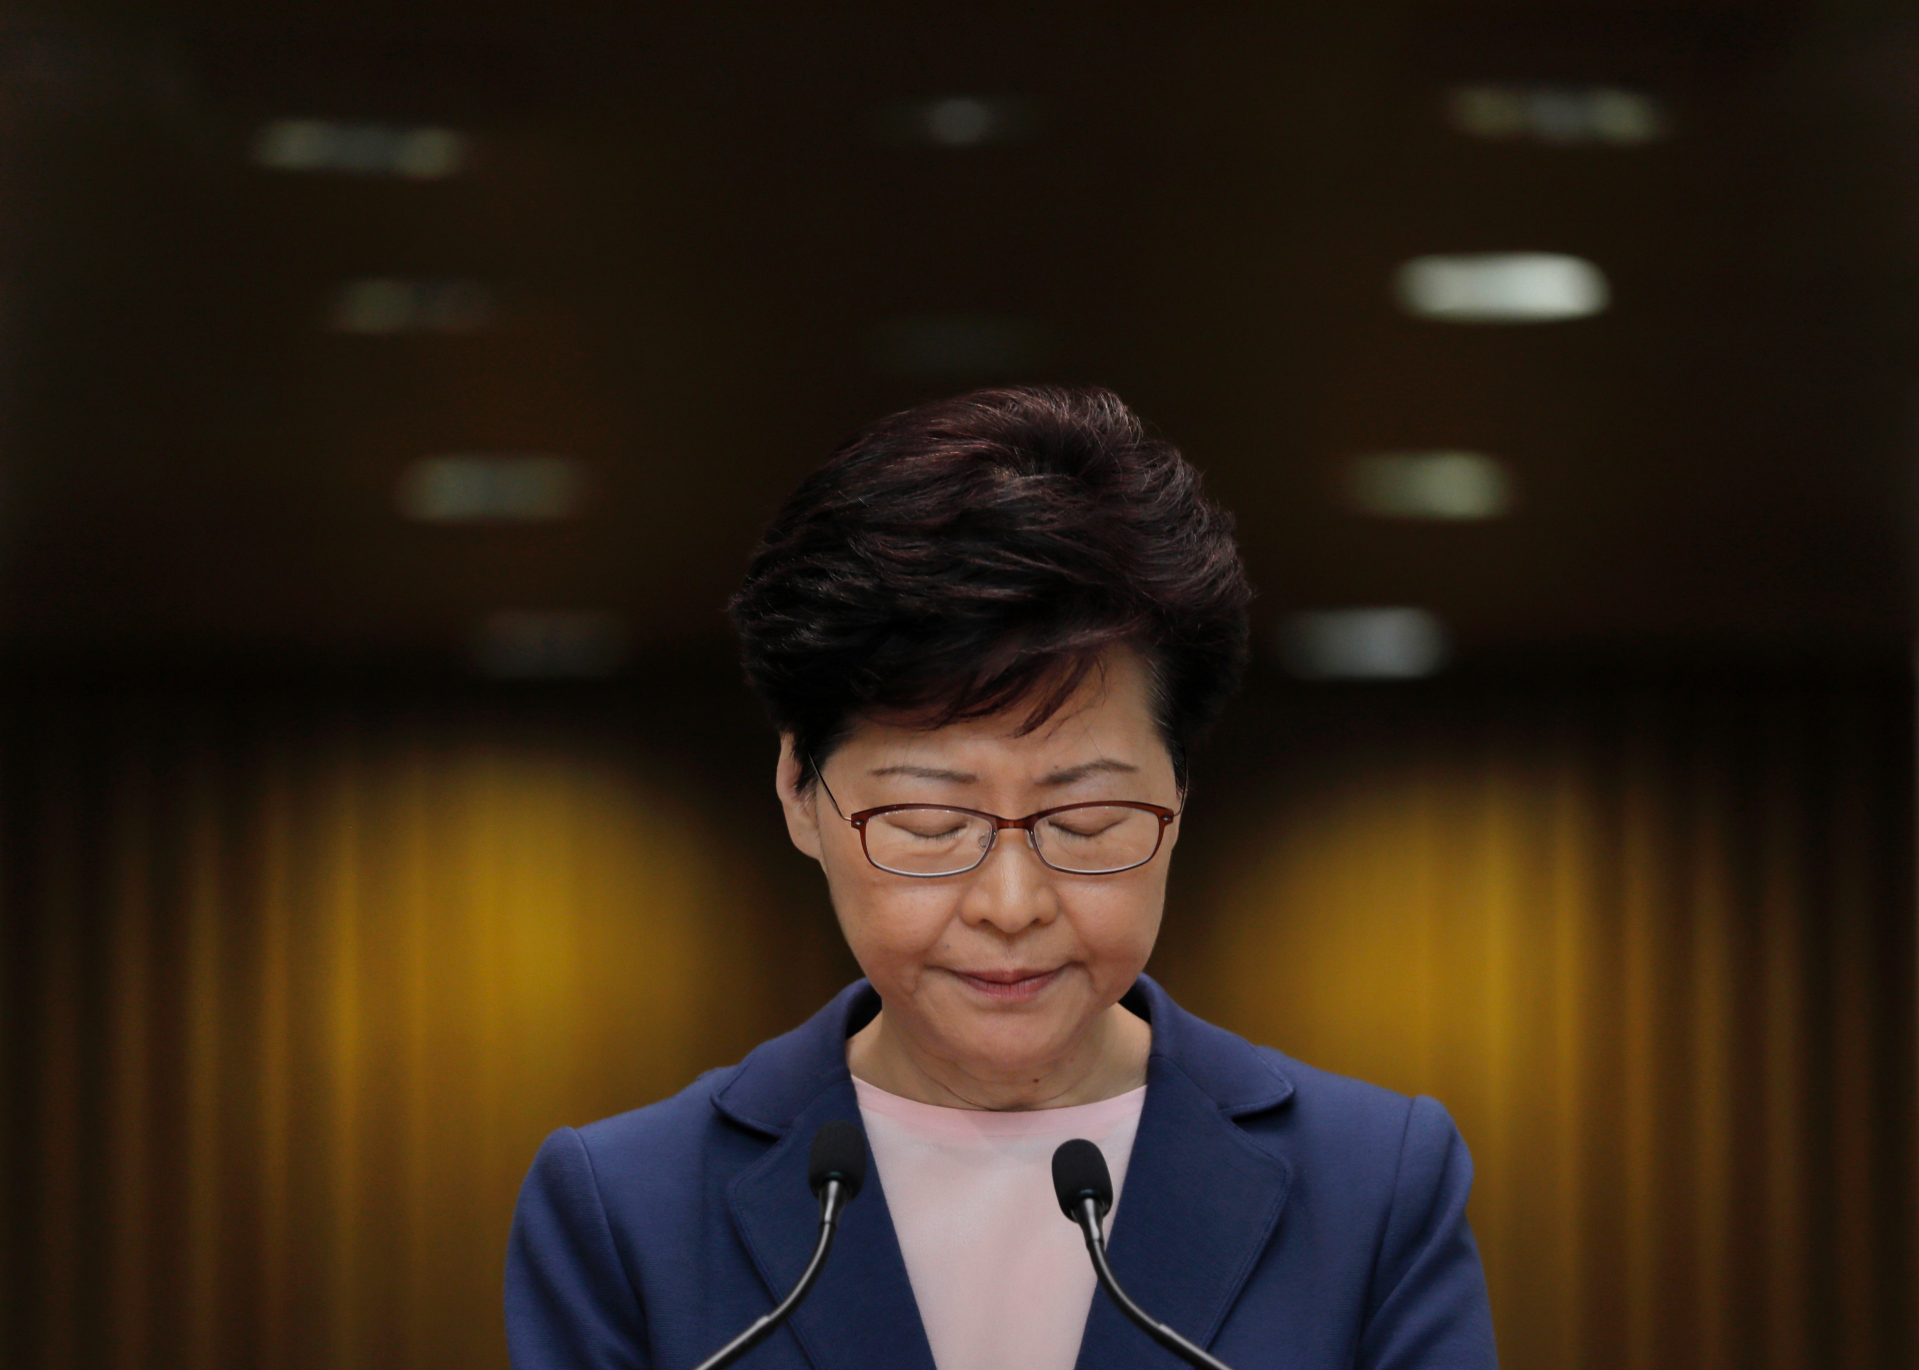 Hong Kong's Lam says Chinese military could step in if uprising worsens